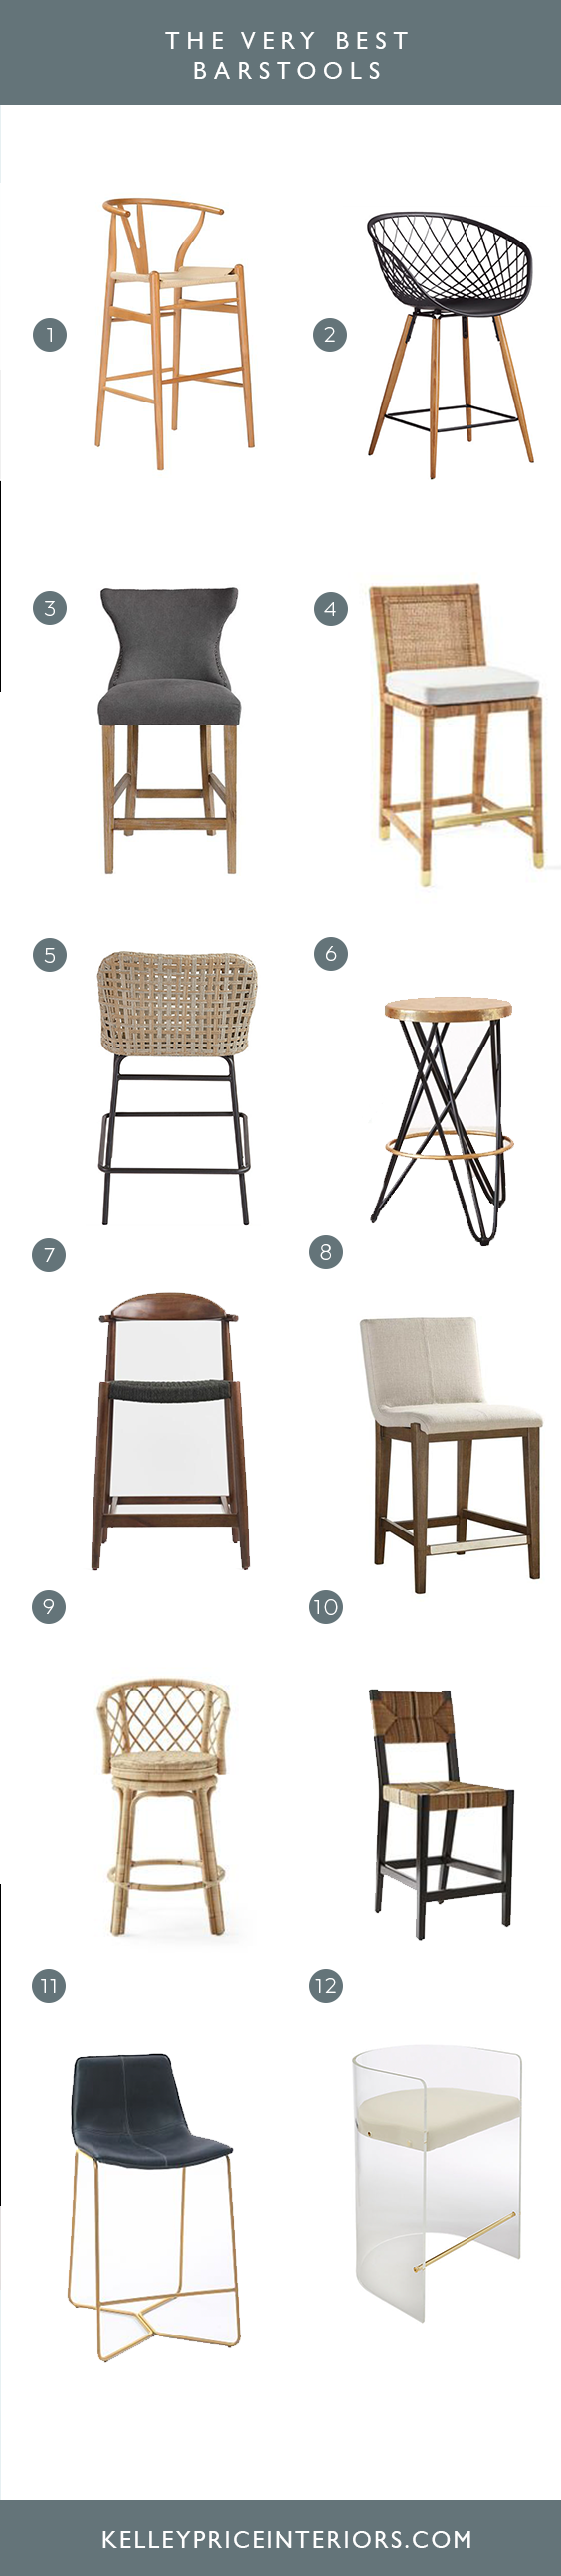 The Best Barstools Round Up by Kelley Price Inteirors.png